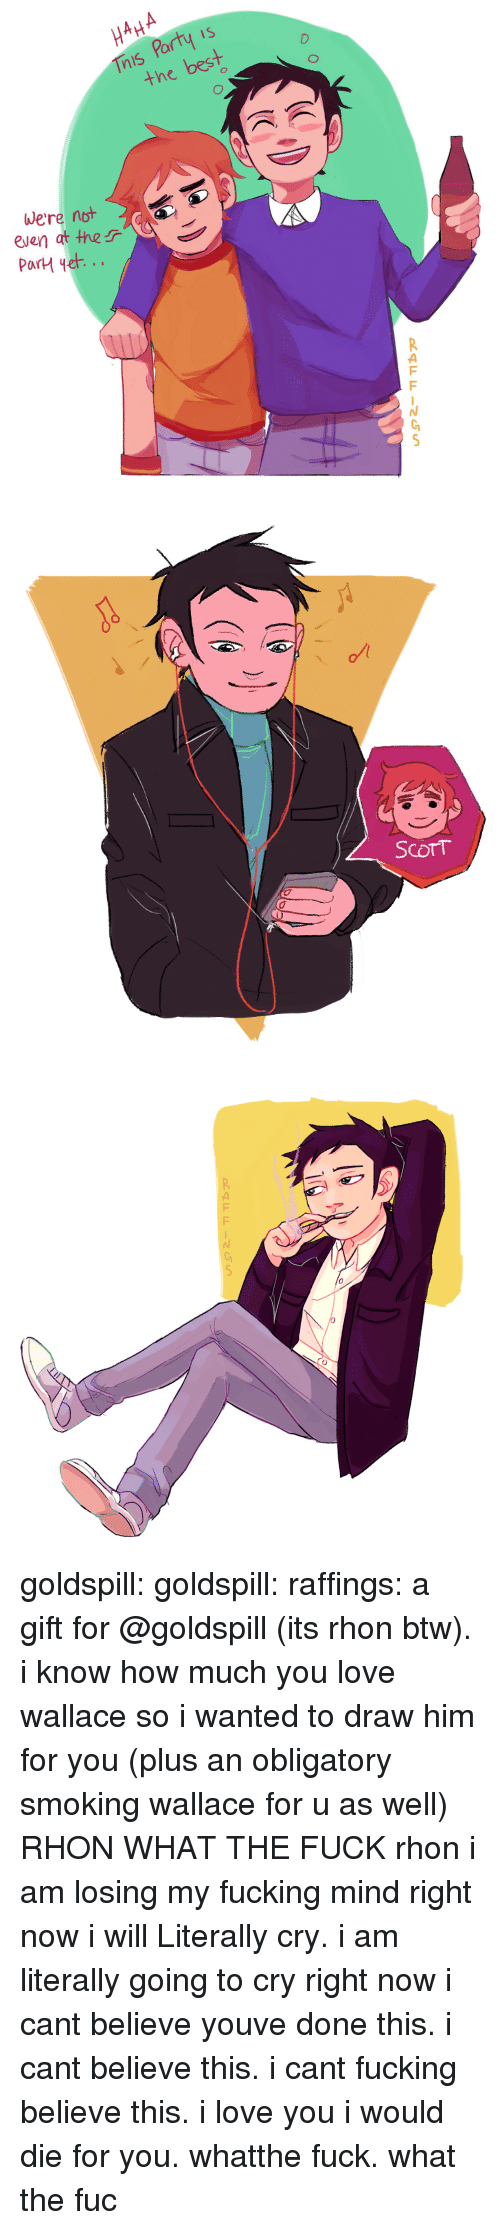 I Cant Believe This: Party is  the be  were not  even at ther  2   ScorT   0  RAFFINGS goldspill:  goldspill: raffings: a gift for @goldspill (its rhon btw). i know how much you love wallace so i wanted to draw him for you (plus an obligatory smoking wallace for u as well) RHON WHAT THE FUCK  rhon i am losing my fucking mind right now i will Literally cry. i am literally going to cry right now i cant believe youve done this. i cant believe this. i cant fucking believe this. i love you i would die for you. whatthe fuck. what the fuc